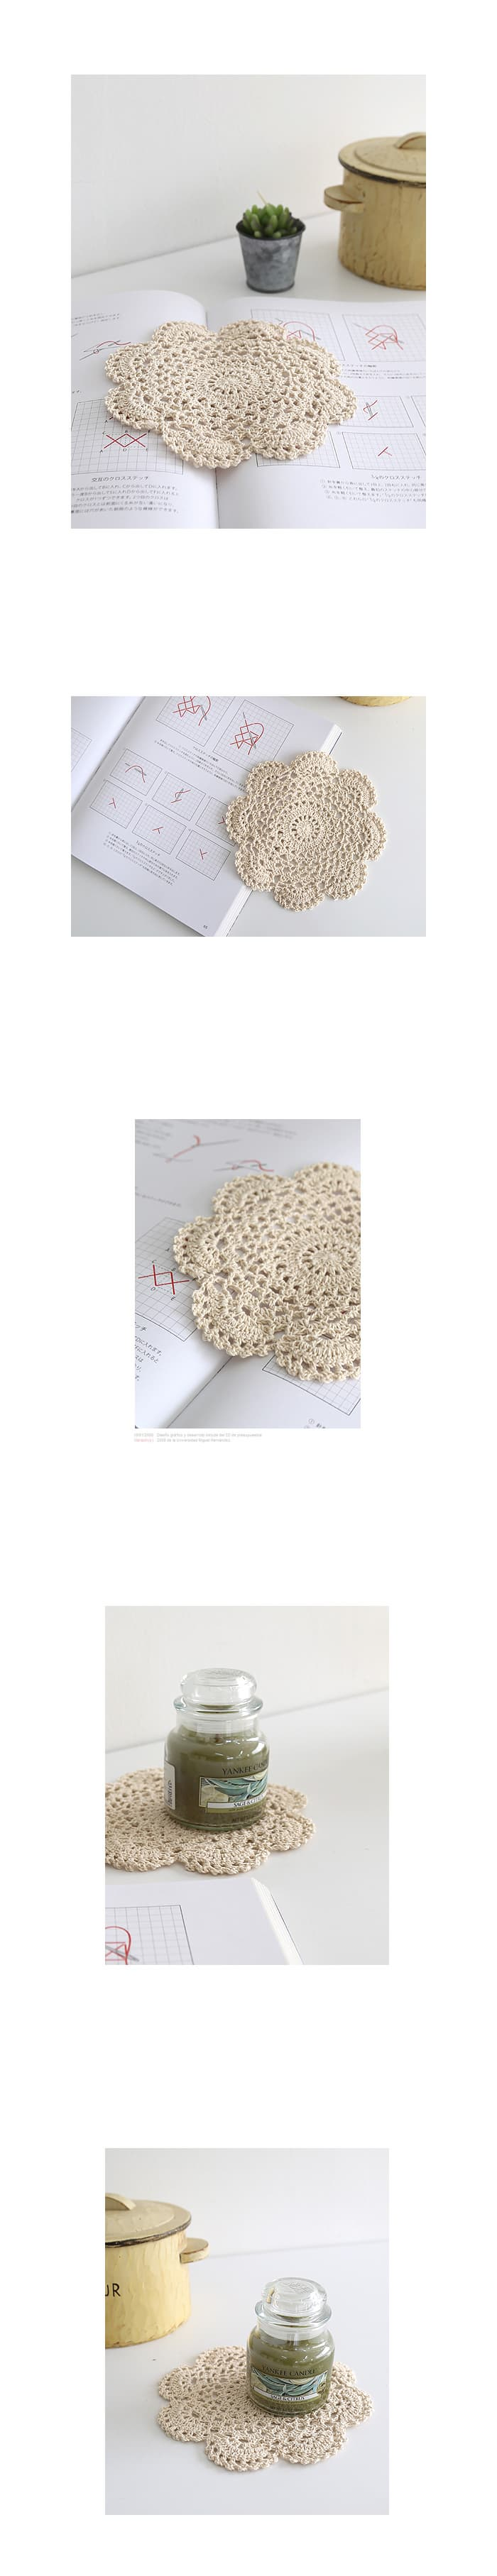 Natural Doily